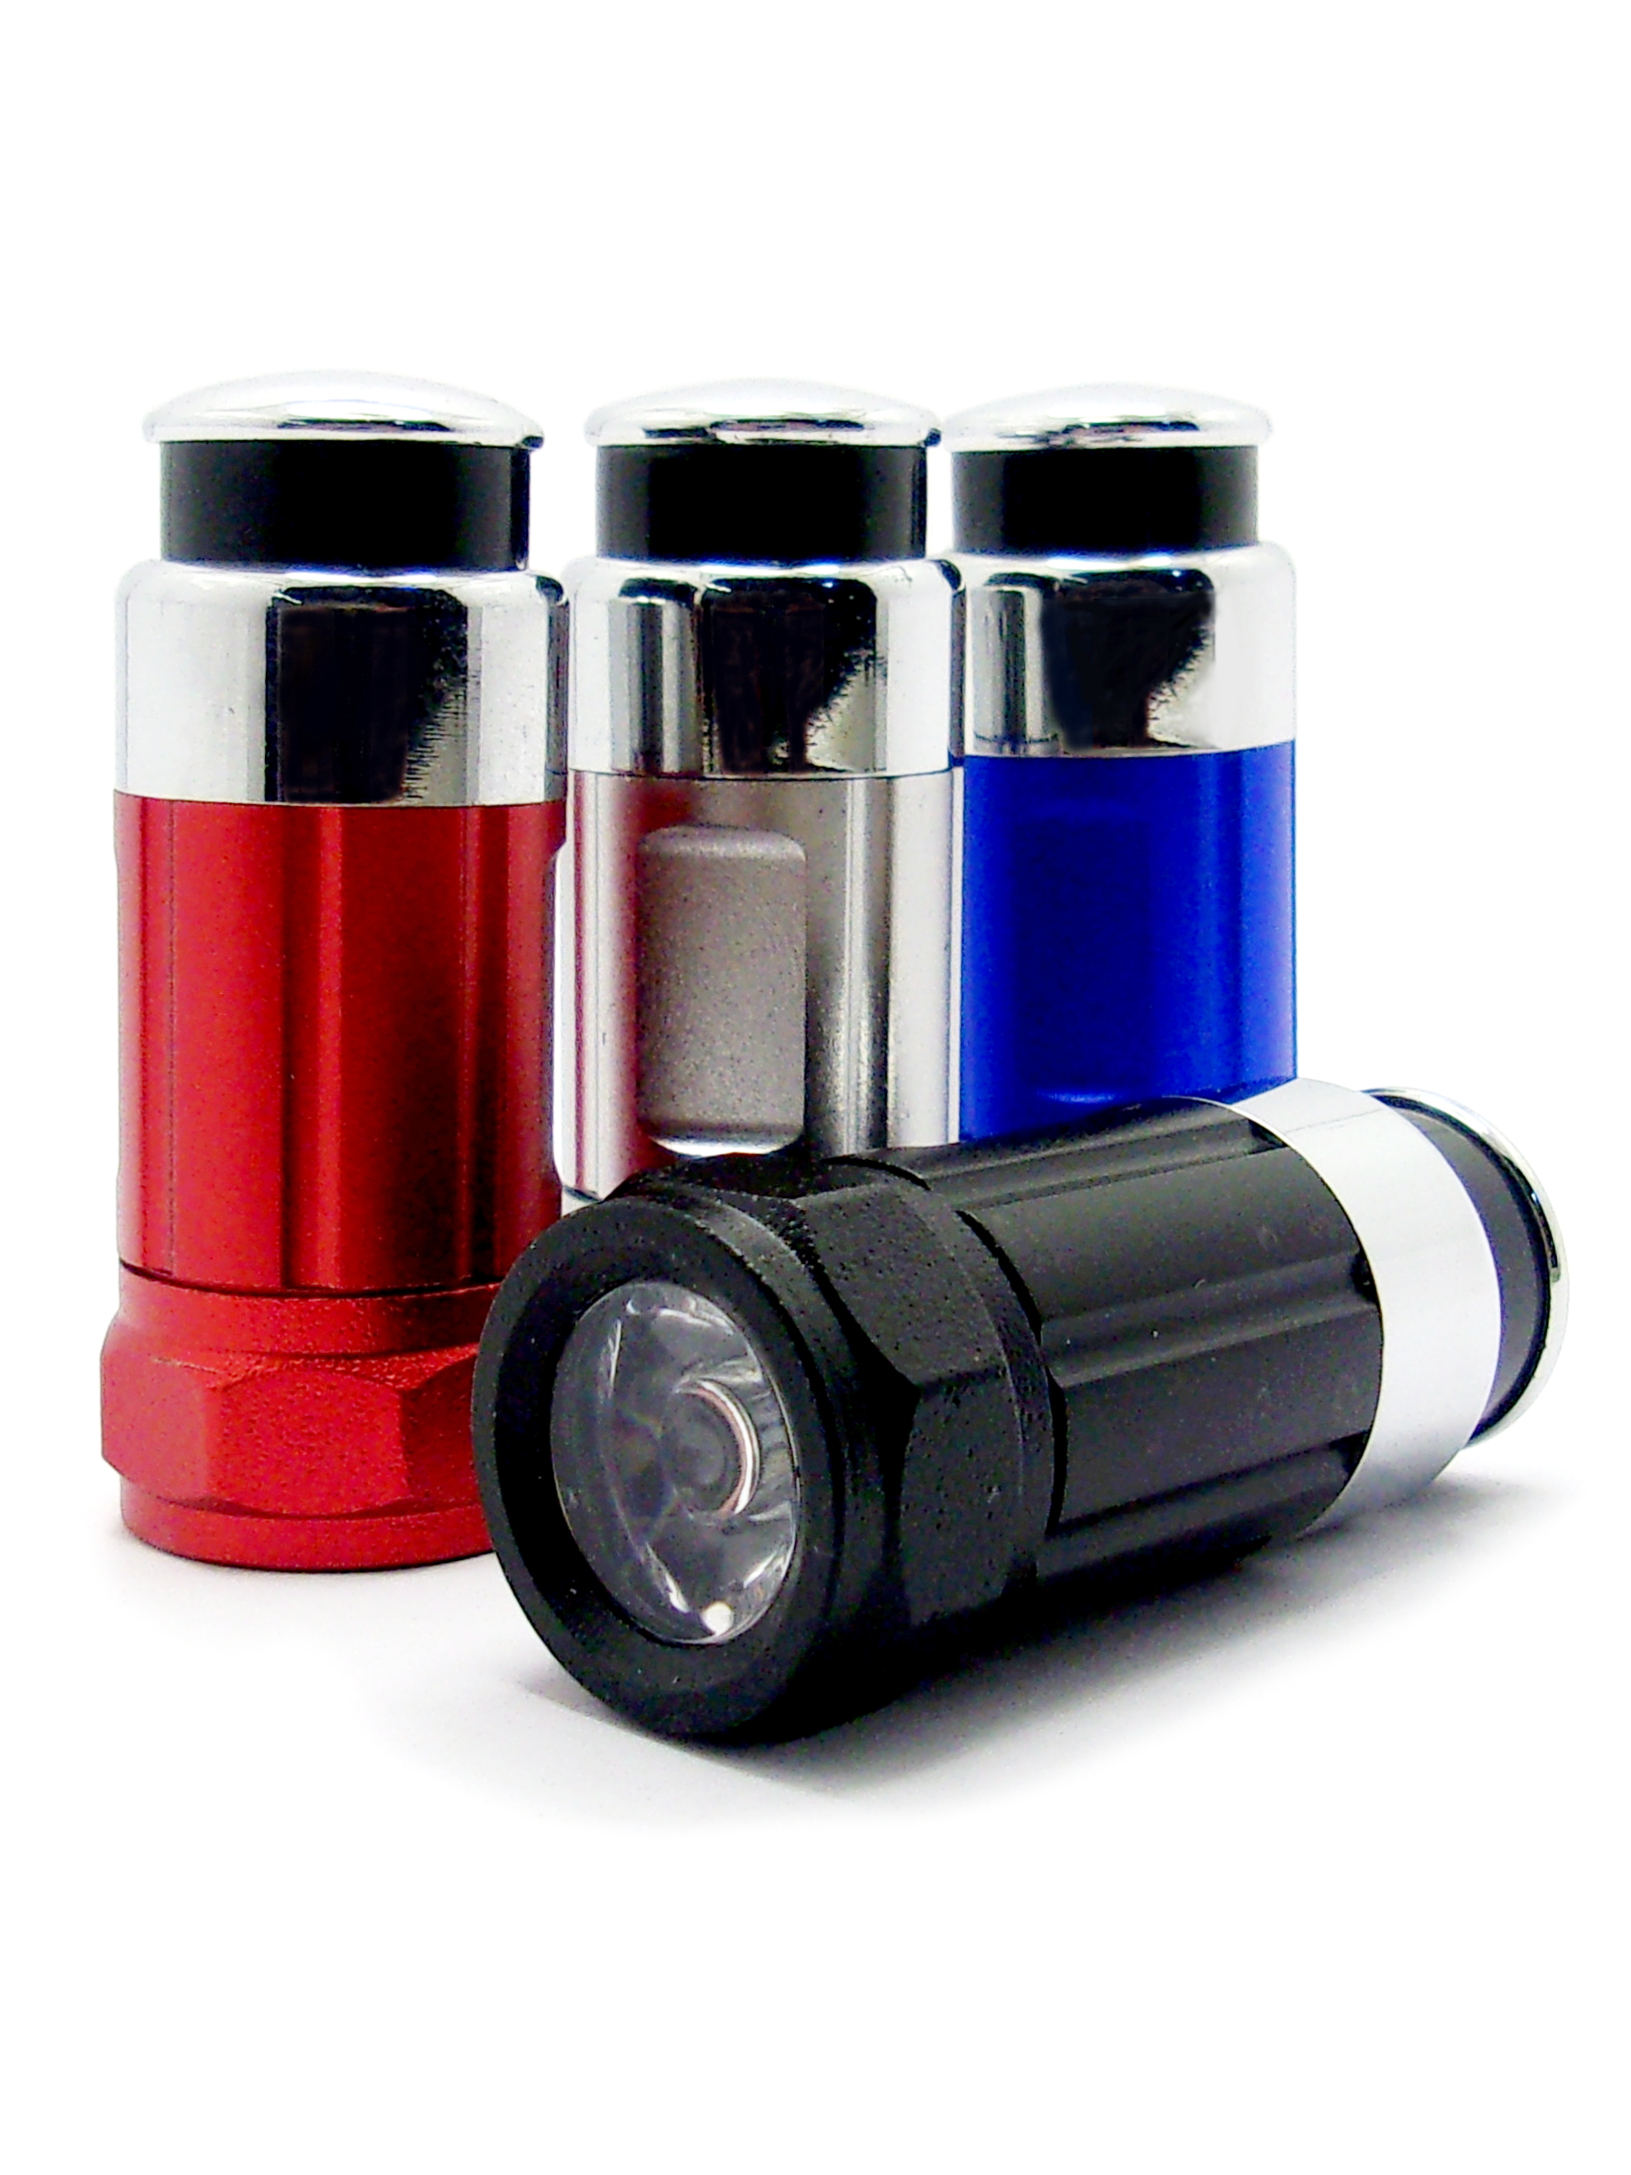 Rechargeable Car Flashlight